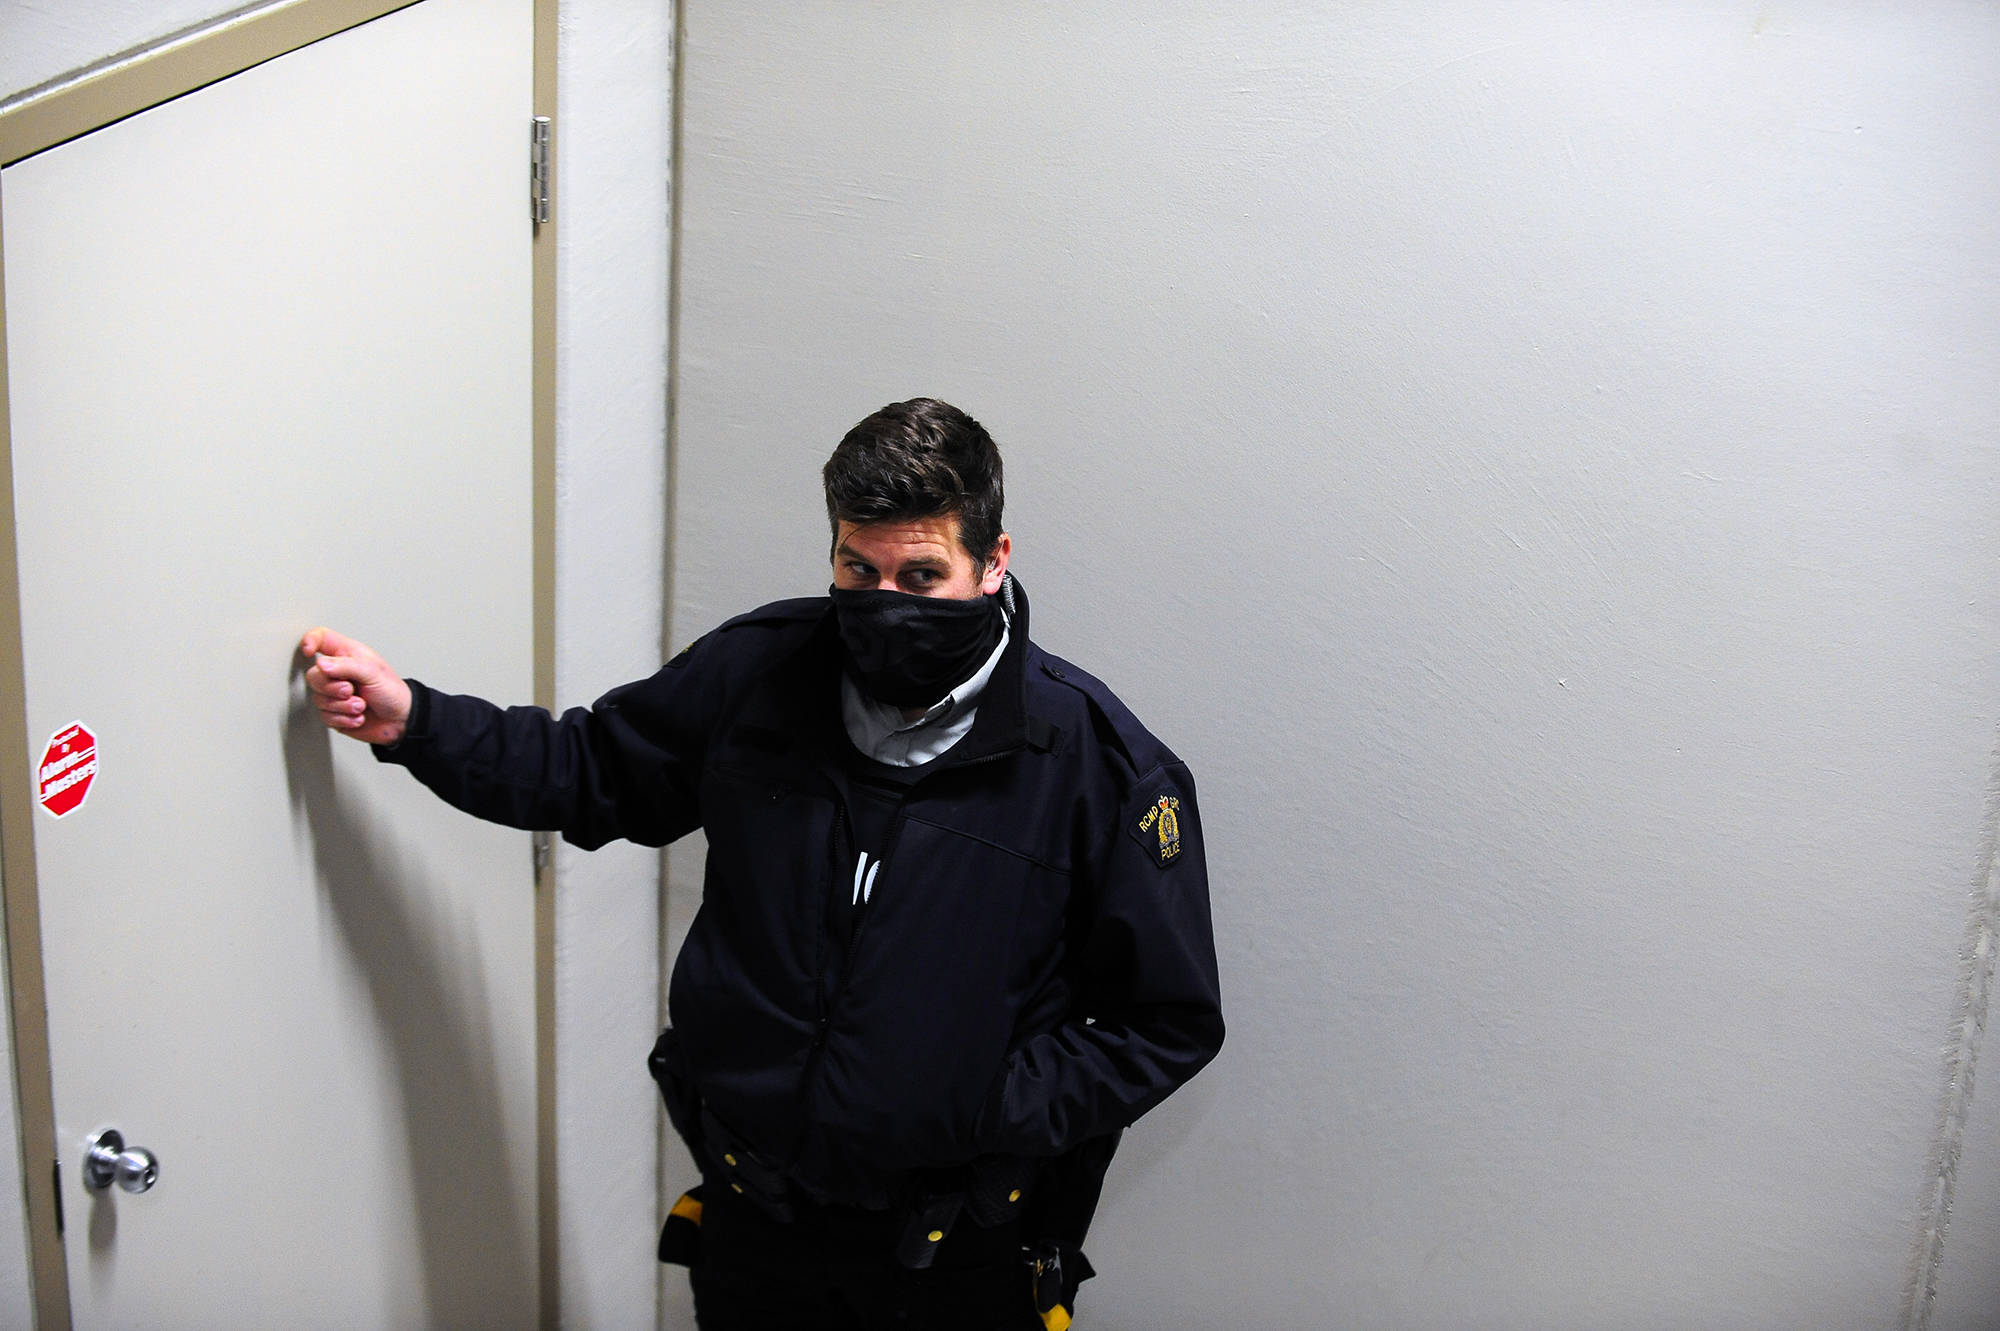 An RCMP officer knocks on the door where parishioners of Kelowna Harvest Fellowship are gathering on Sunday, Jan. 10. (Michael Rodriguez - Capital News)